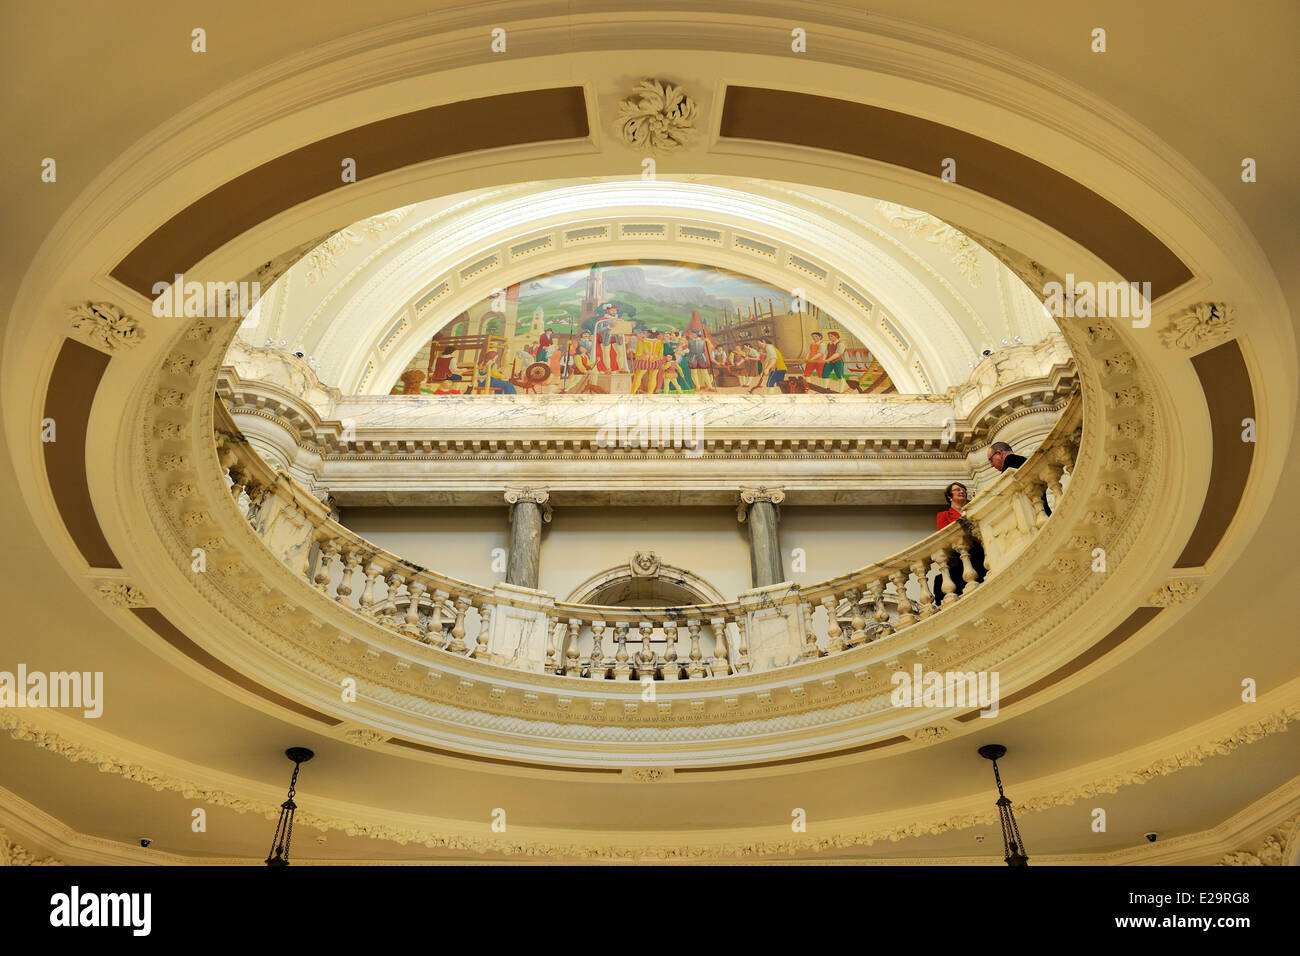 United Kingdom, Northern Ireland, Belfast, the City Hall, the main hall and mural symbolizing the history of the Stock Photo